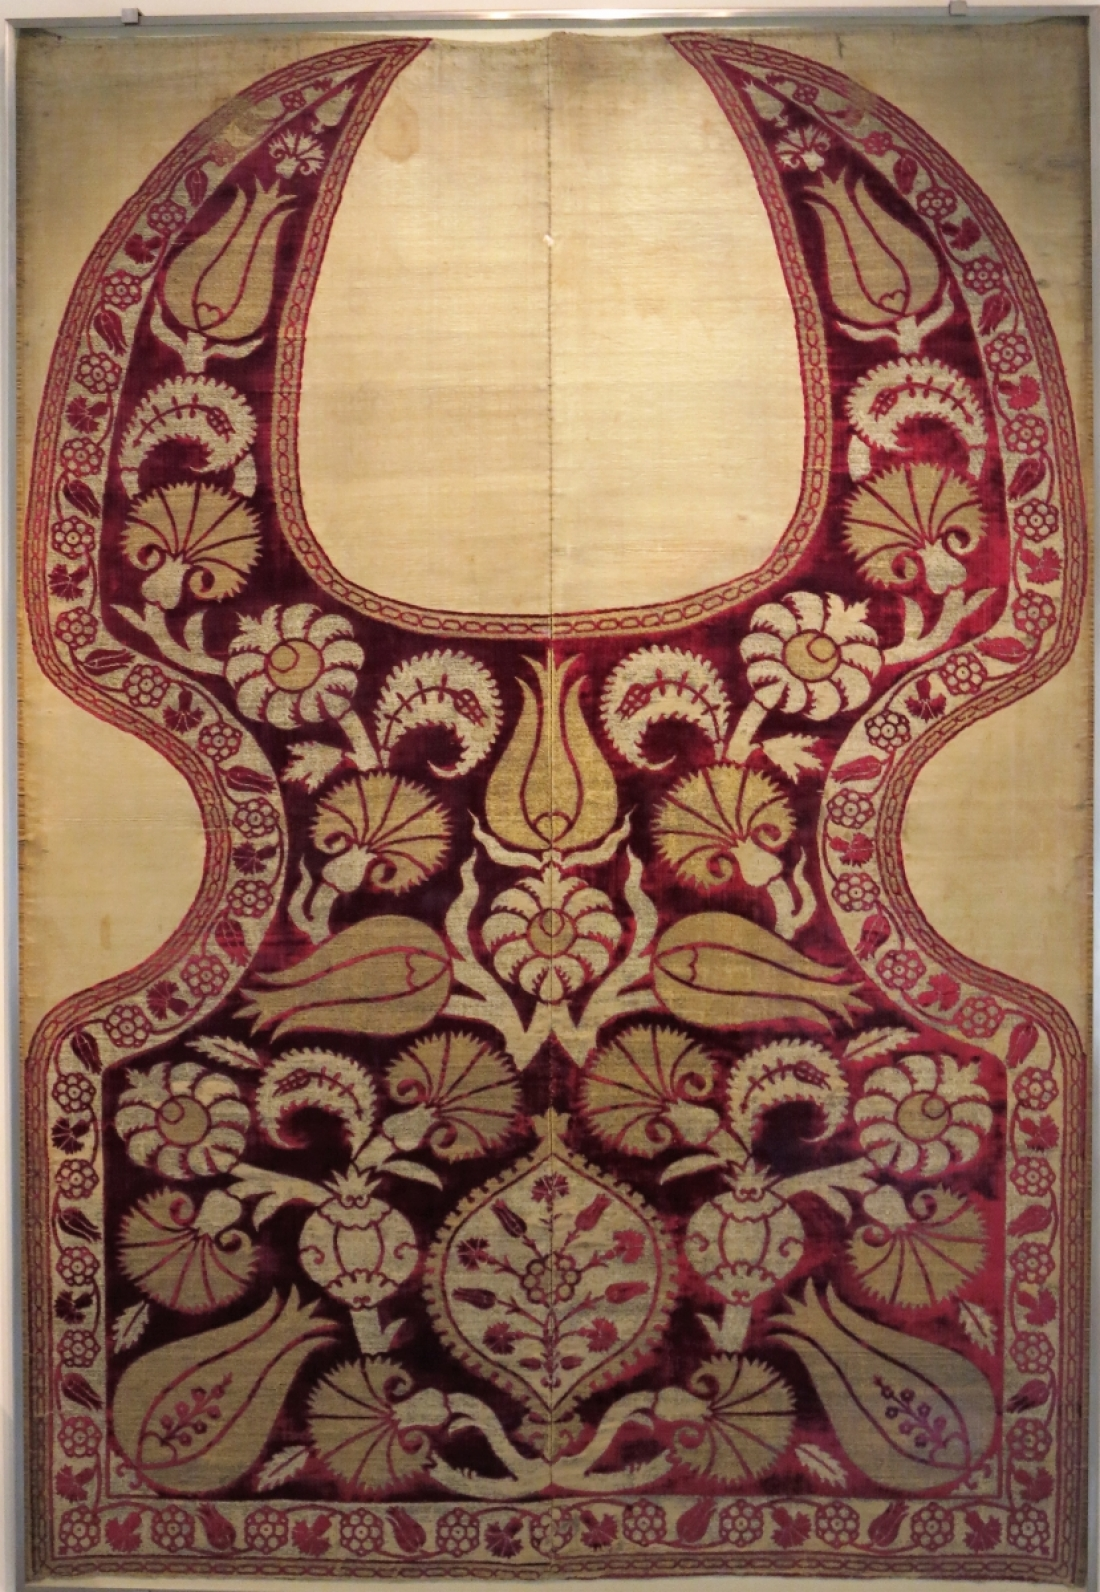 Ottoman velvet saddle, circa 1600, Benaki Museum of Islamic Art, Athens